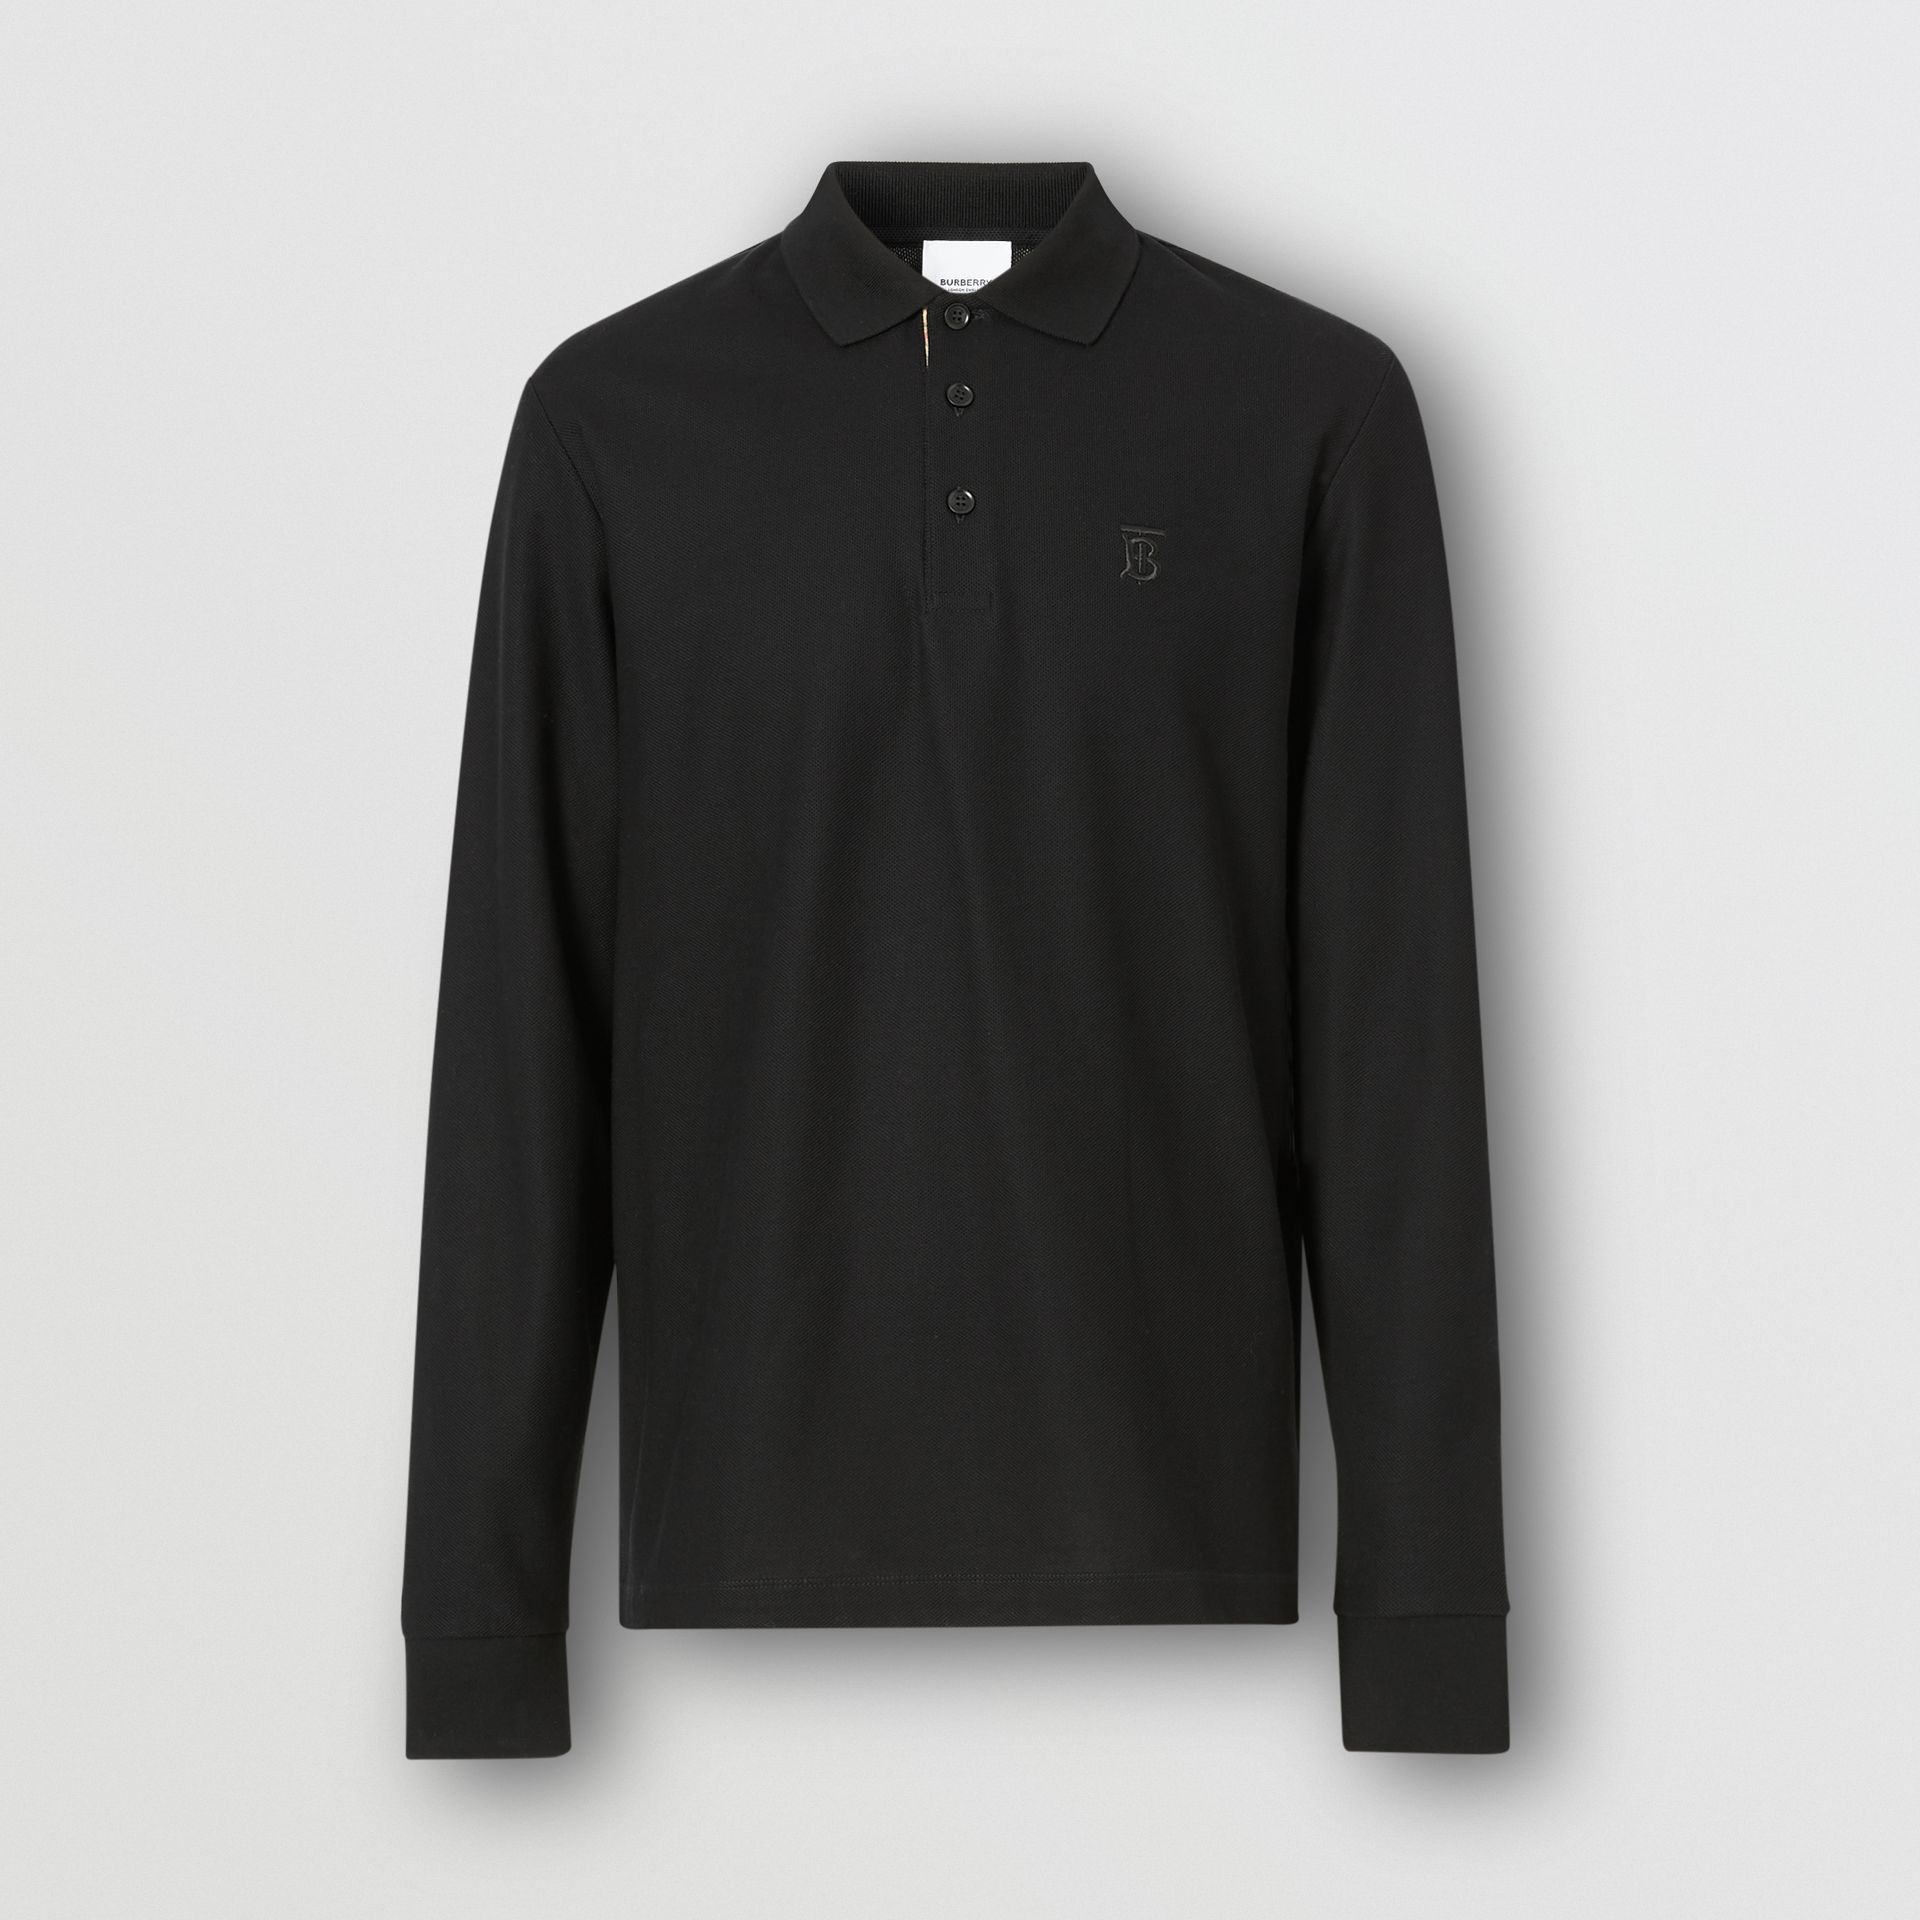 Long-sleeve Monogram Motif Cotton Piqué Polo Shirt in Black - Men | Burberry - gallery image 3